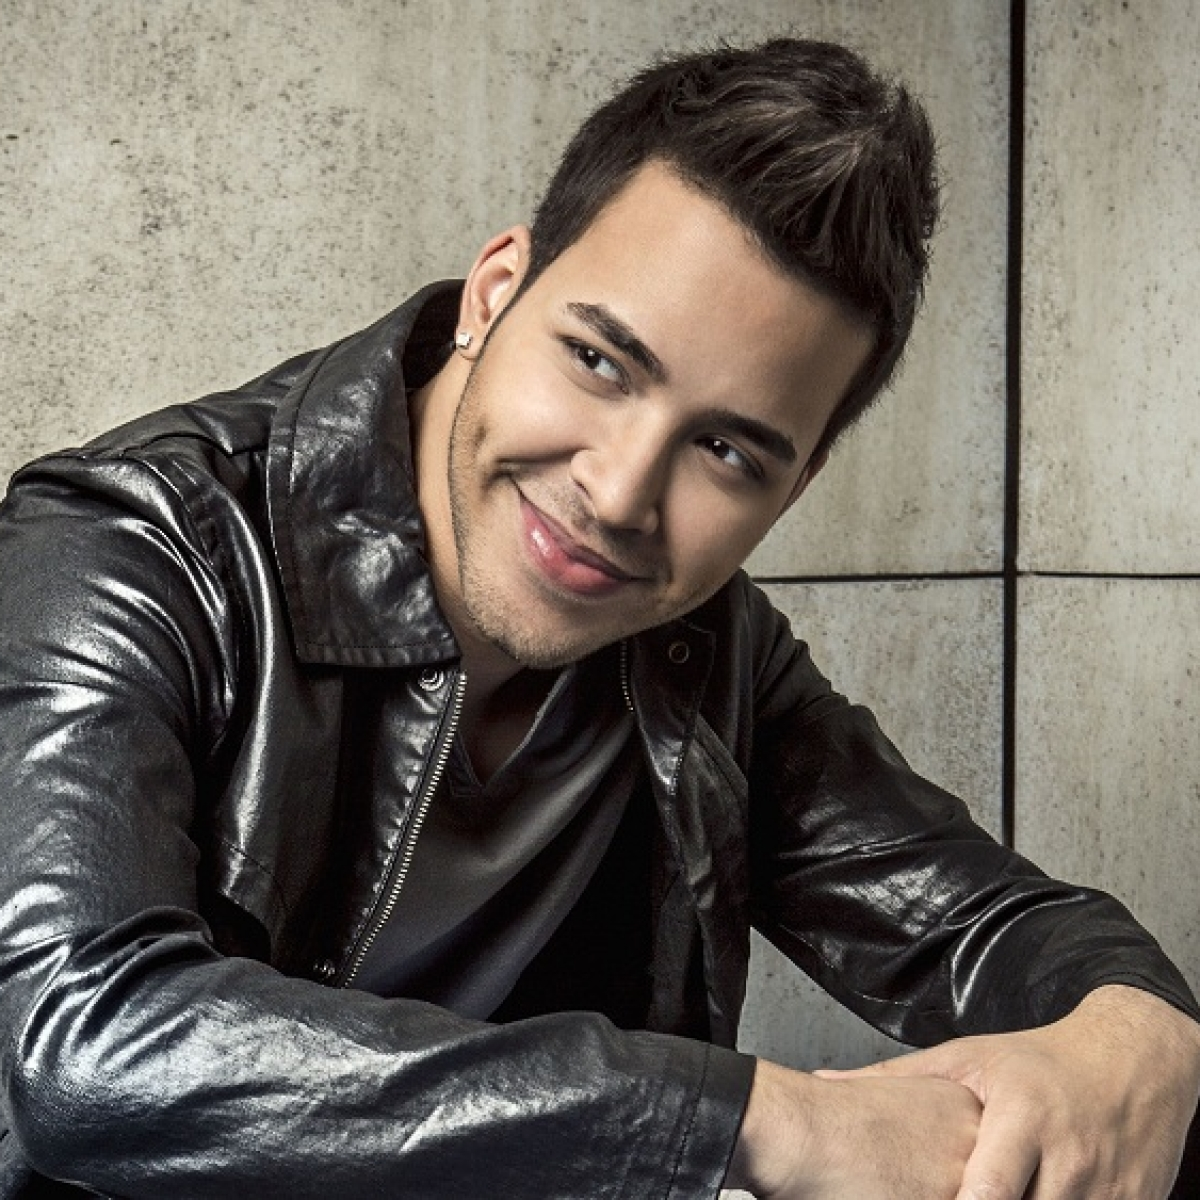 I'm in shock: Singer Prince Royce tests positive for COVID-19